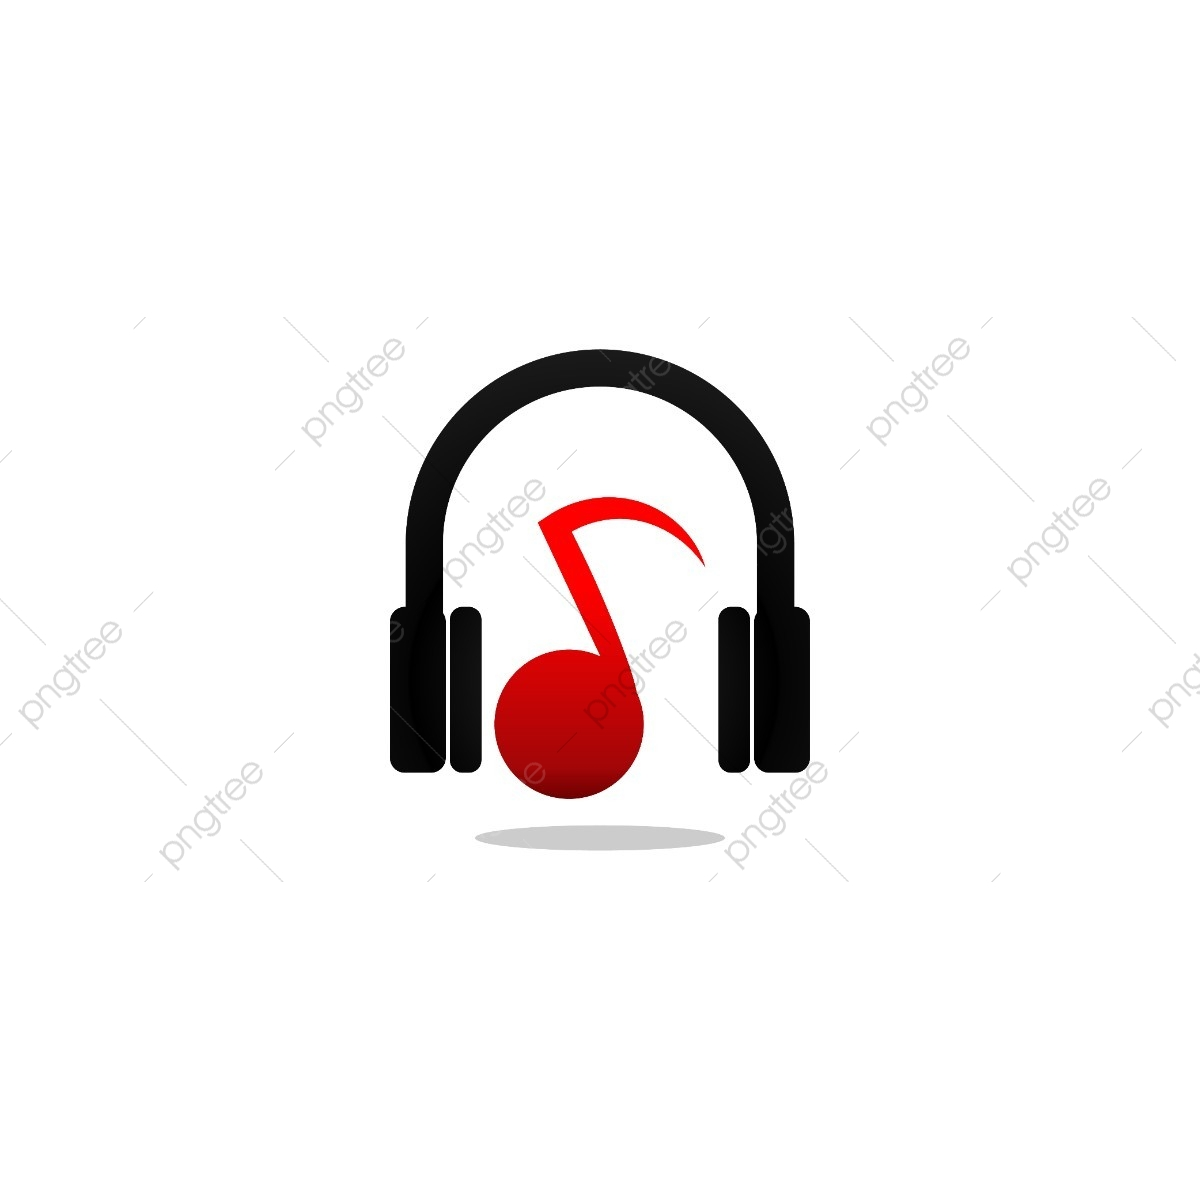 music logo png vector psd and clipart with transparent background for free download pngtree https pngtree com freepng headphone and note music logo and icon design template 3555900 html